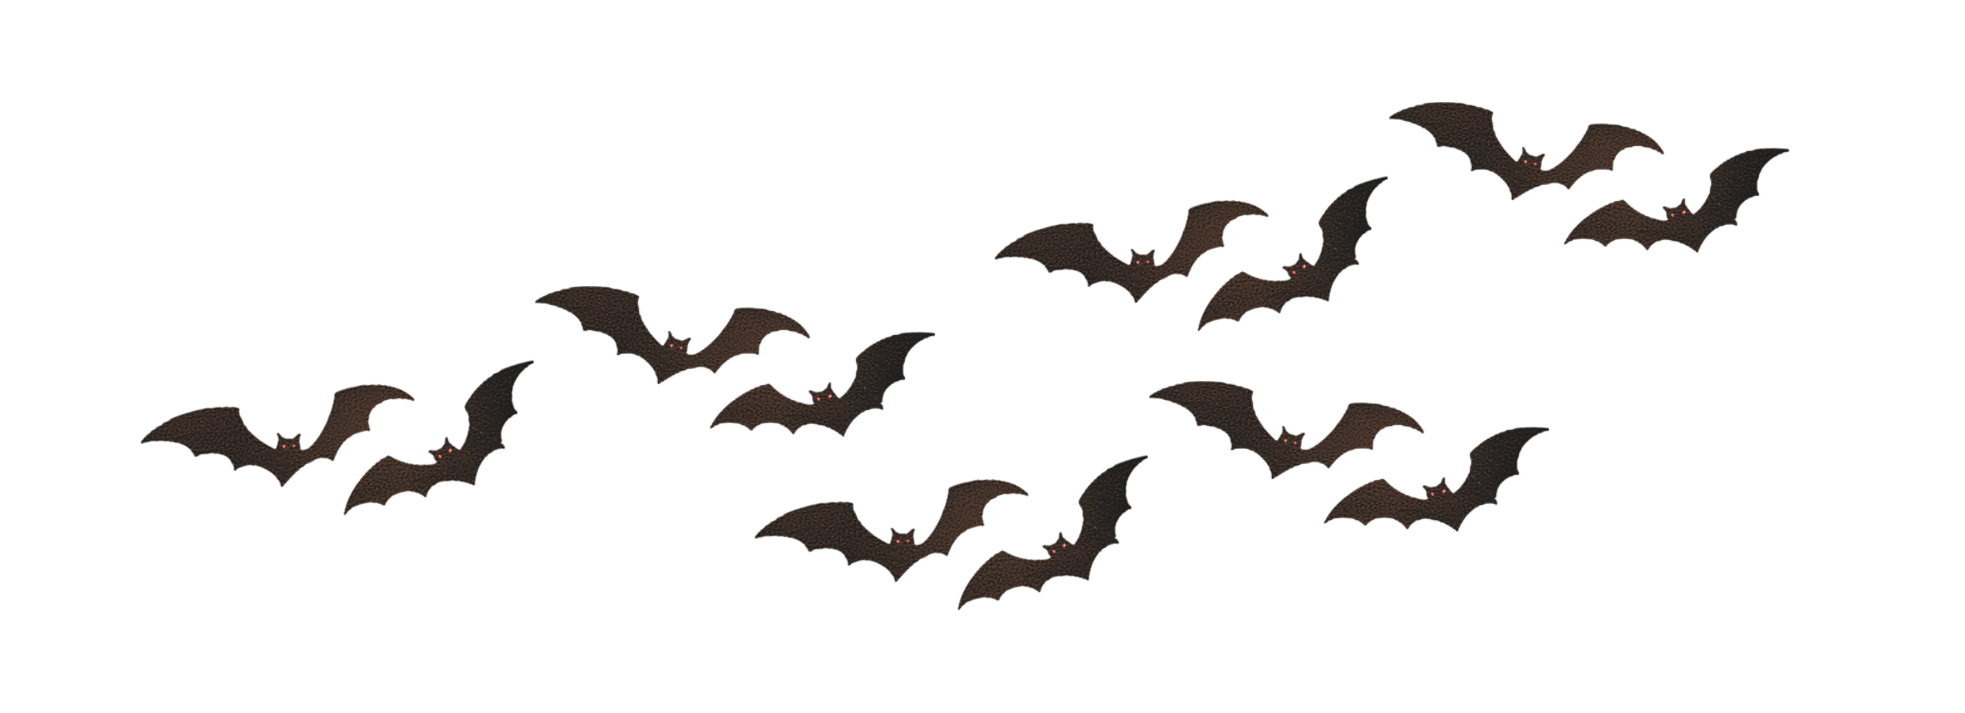 —Pngtree—grey_creative_bat_flying_element_4529940.png